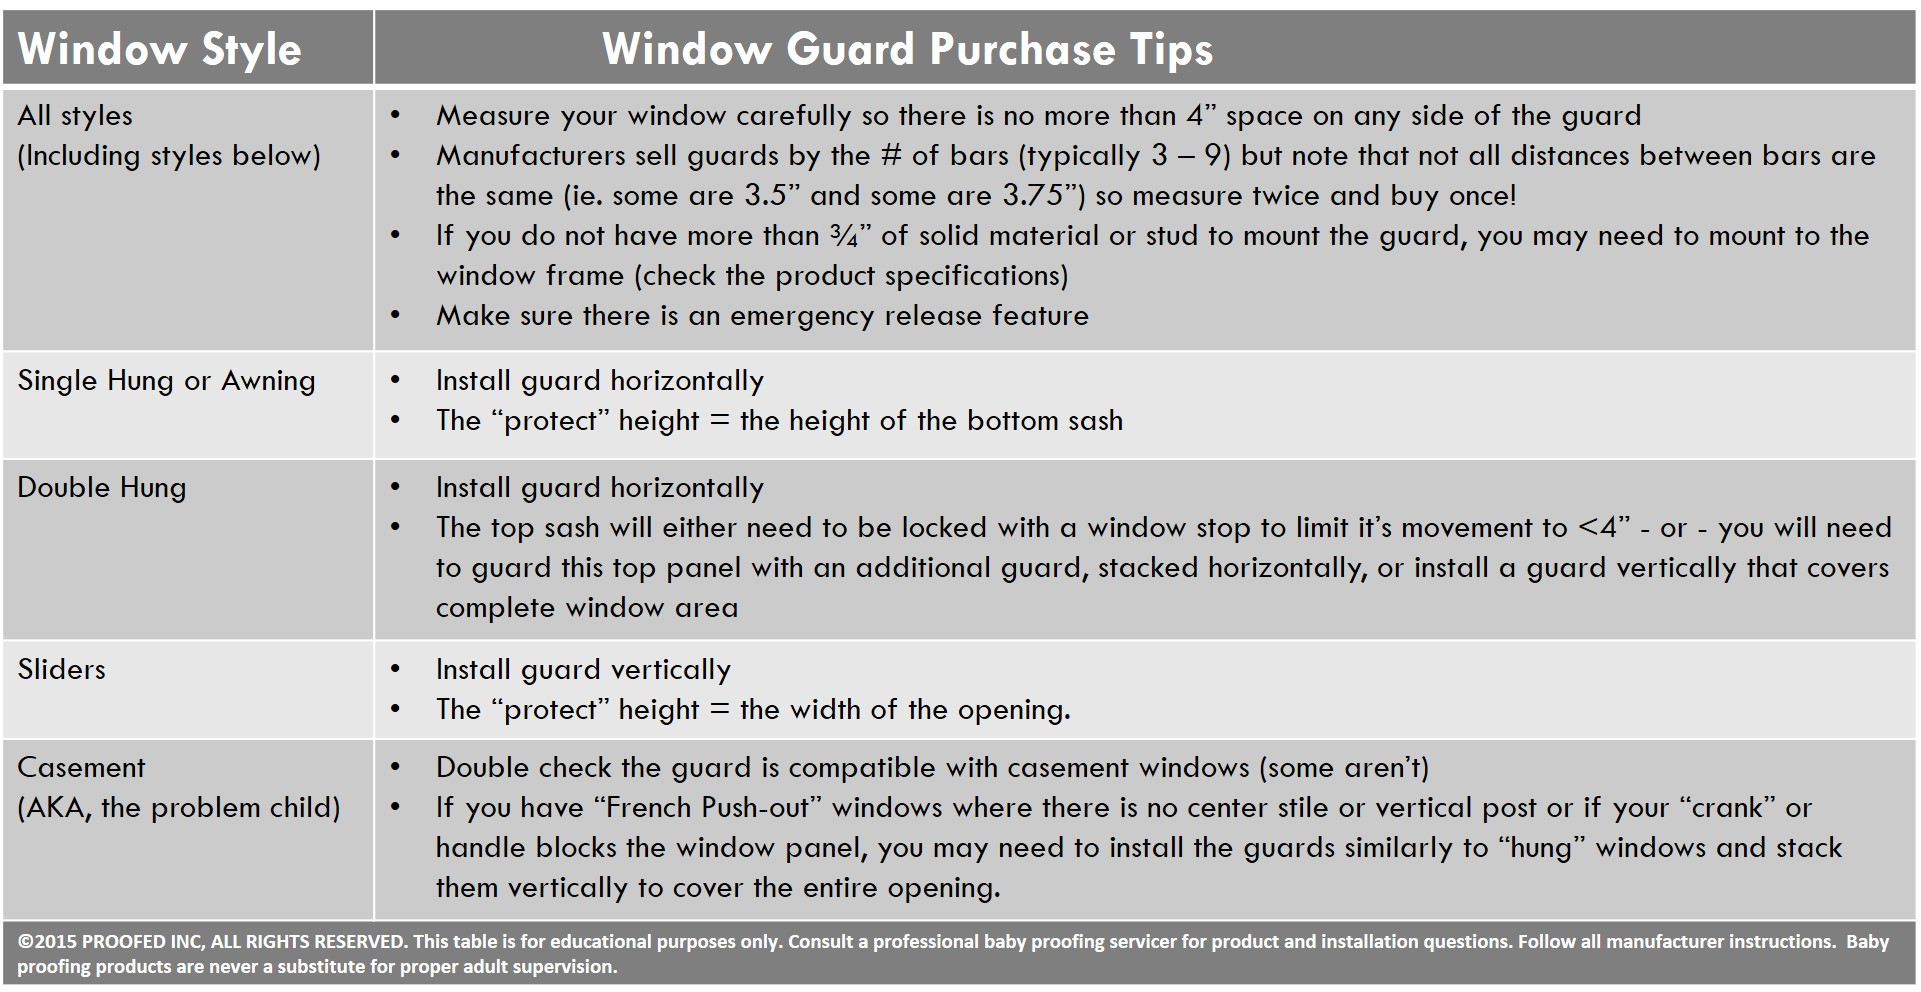 Tips for purchasing your window guard for double hung windows, casement windows and more.